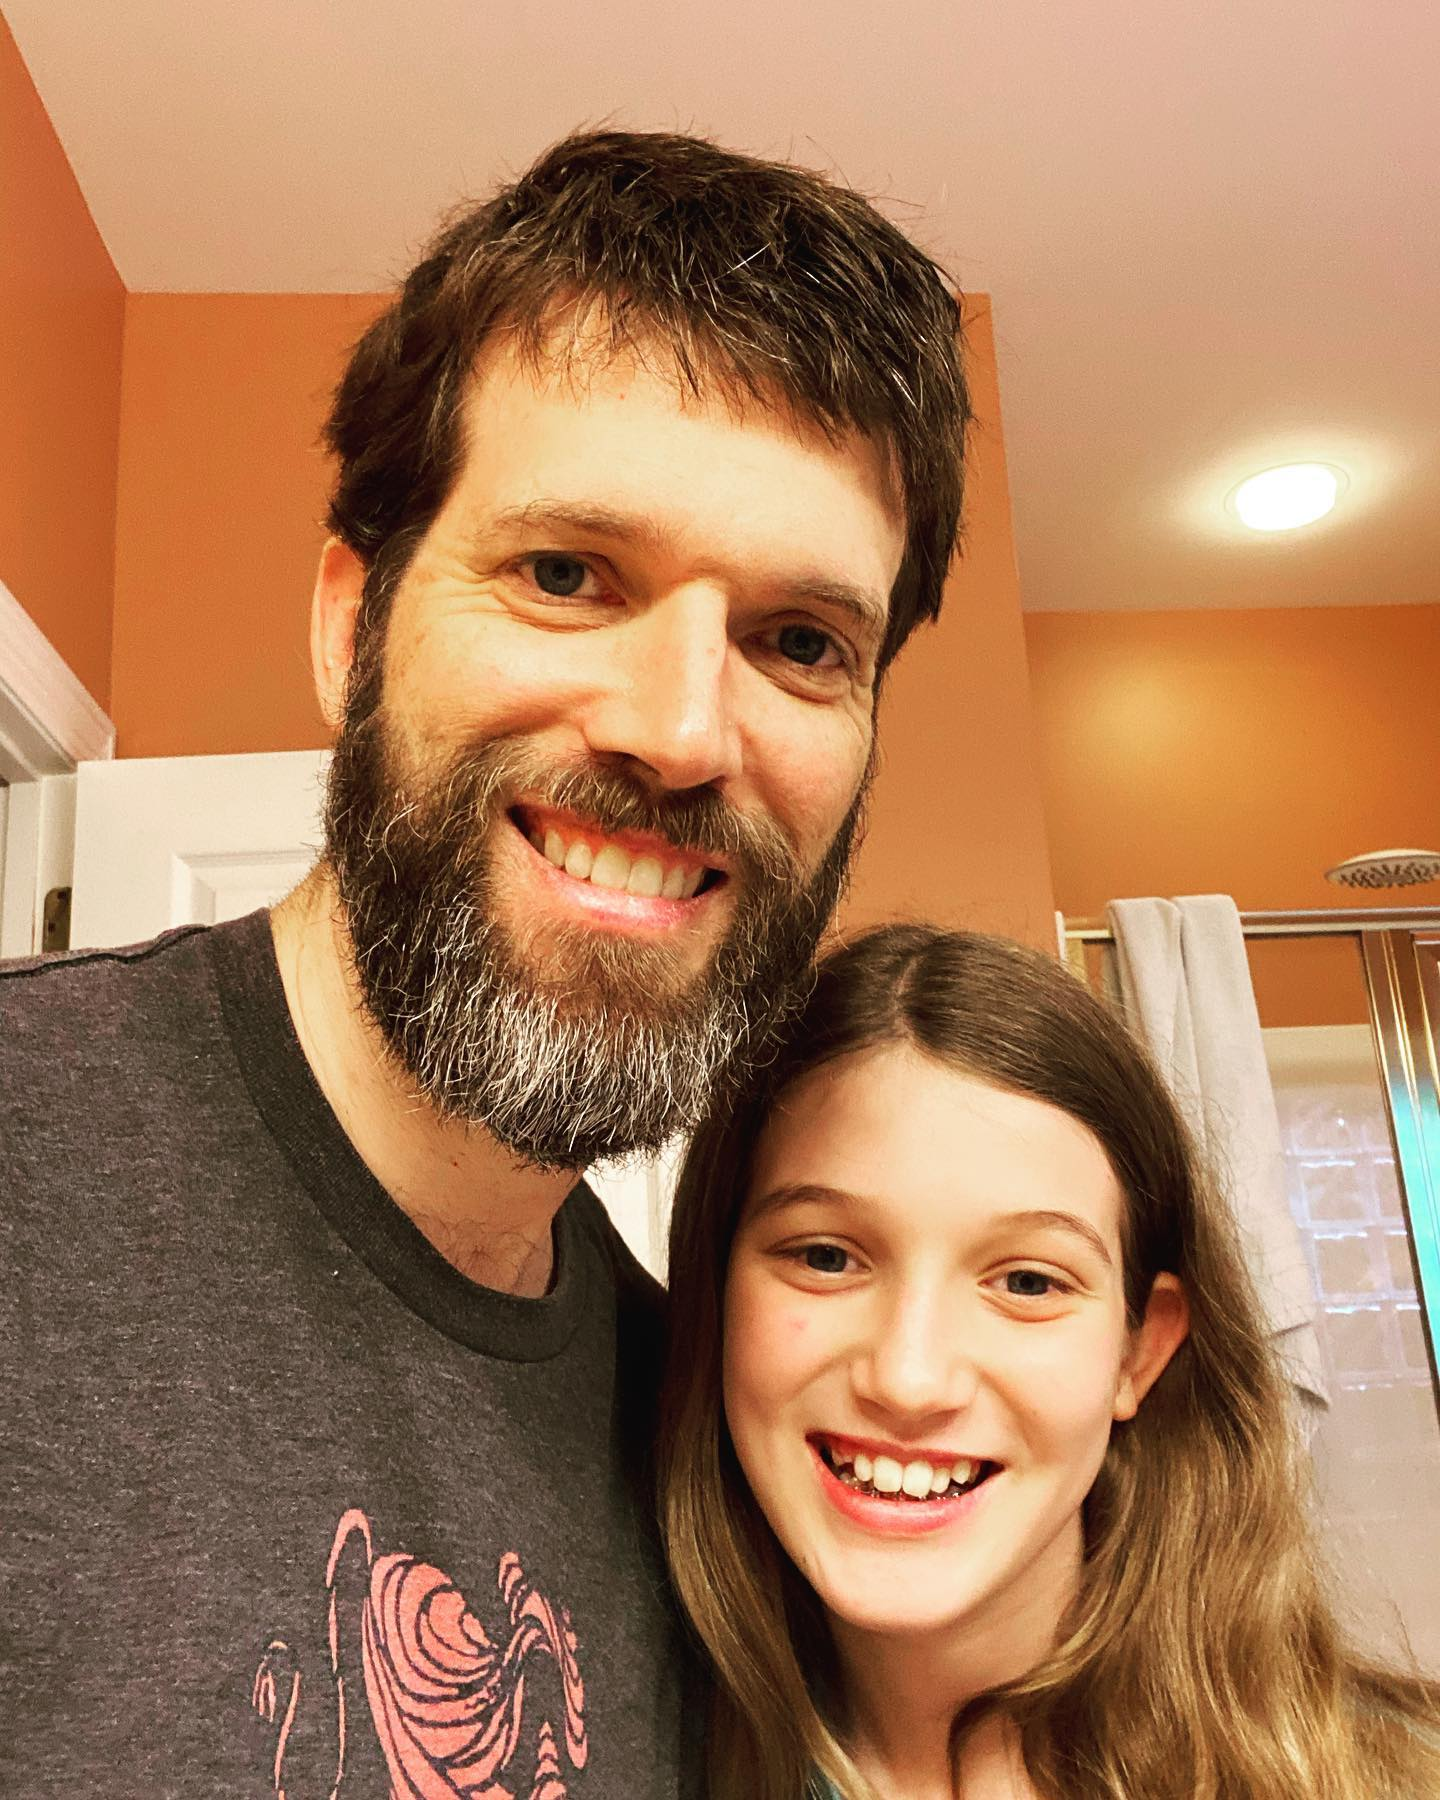 First beard trim in 100 days. Sara even helped out. #family #beard